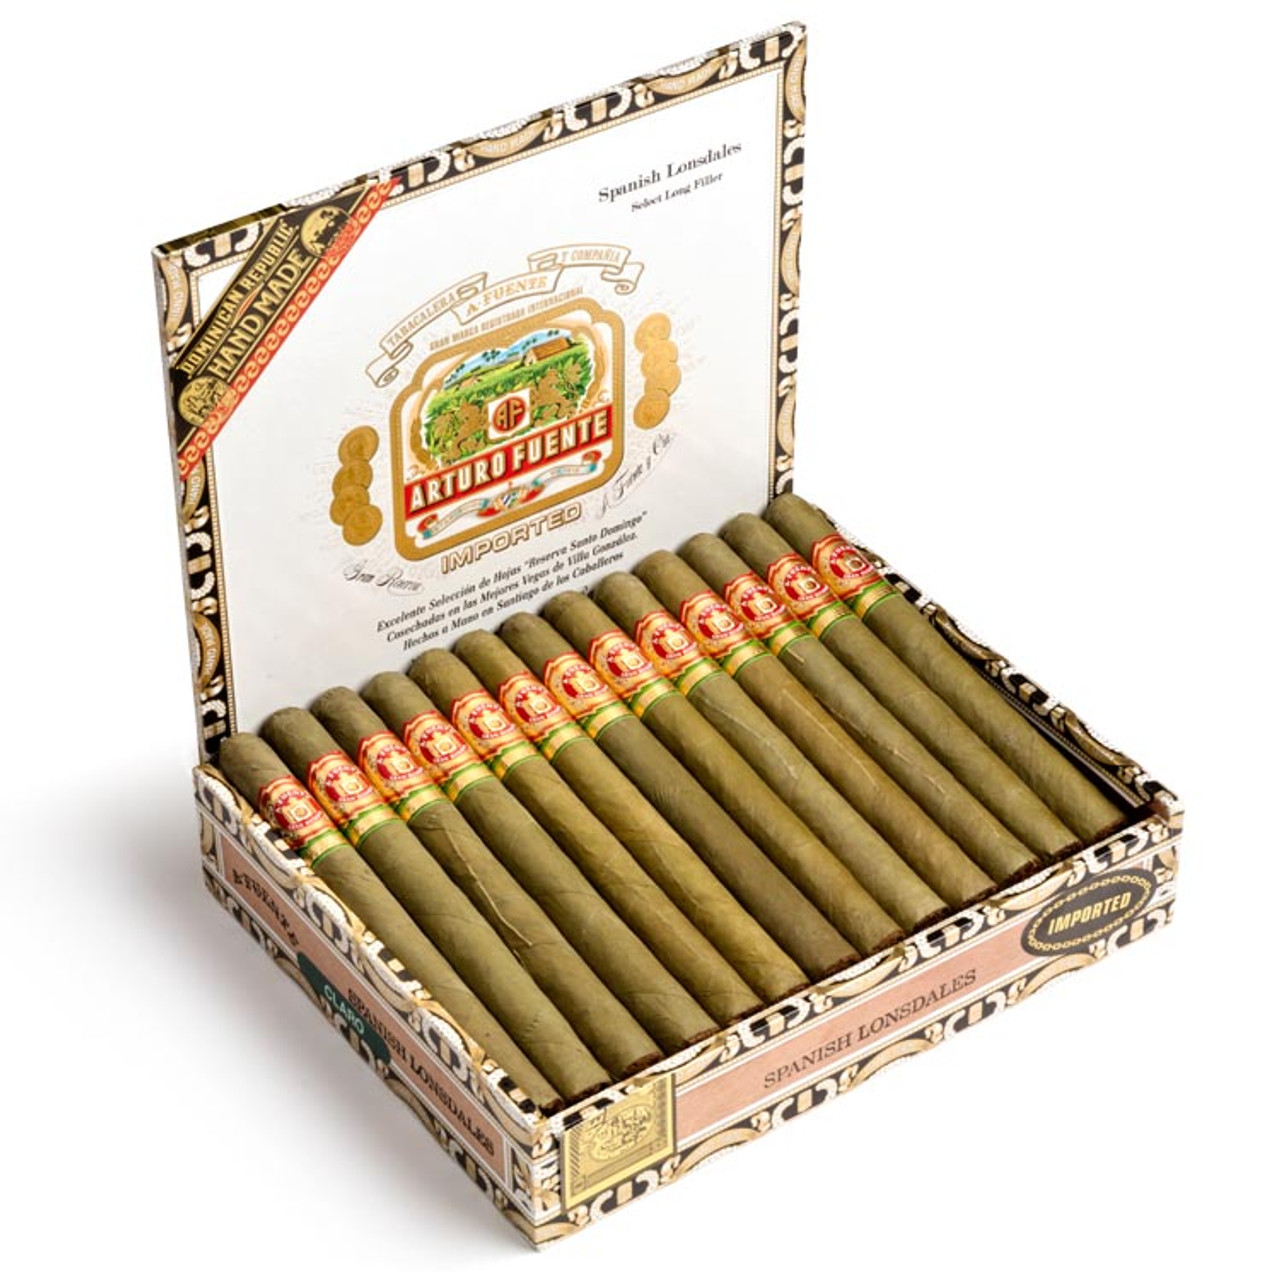 Arturo Fuente Spanish Lonsdale Cigars - 6.5 x 42 (Box of 25)